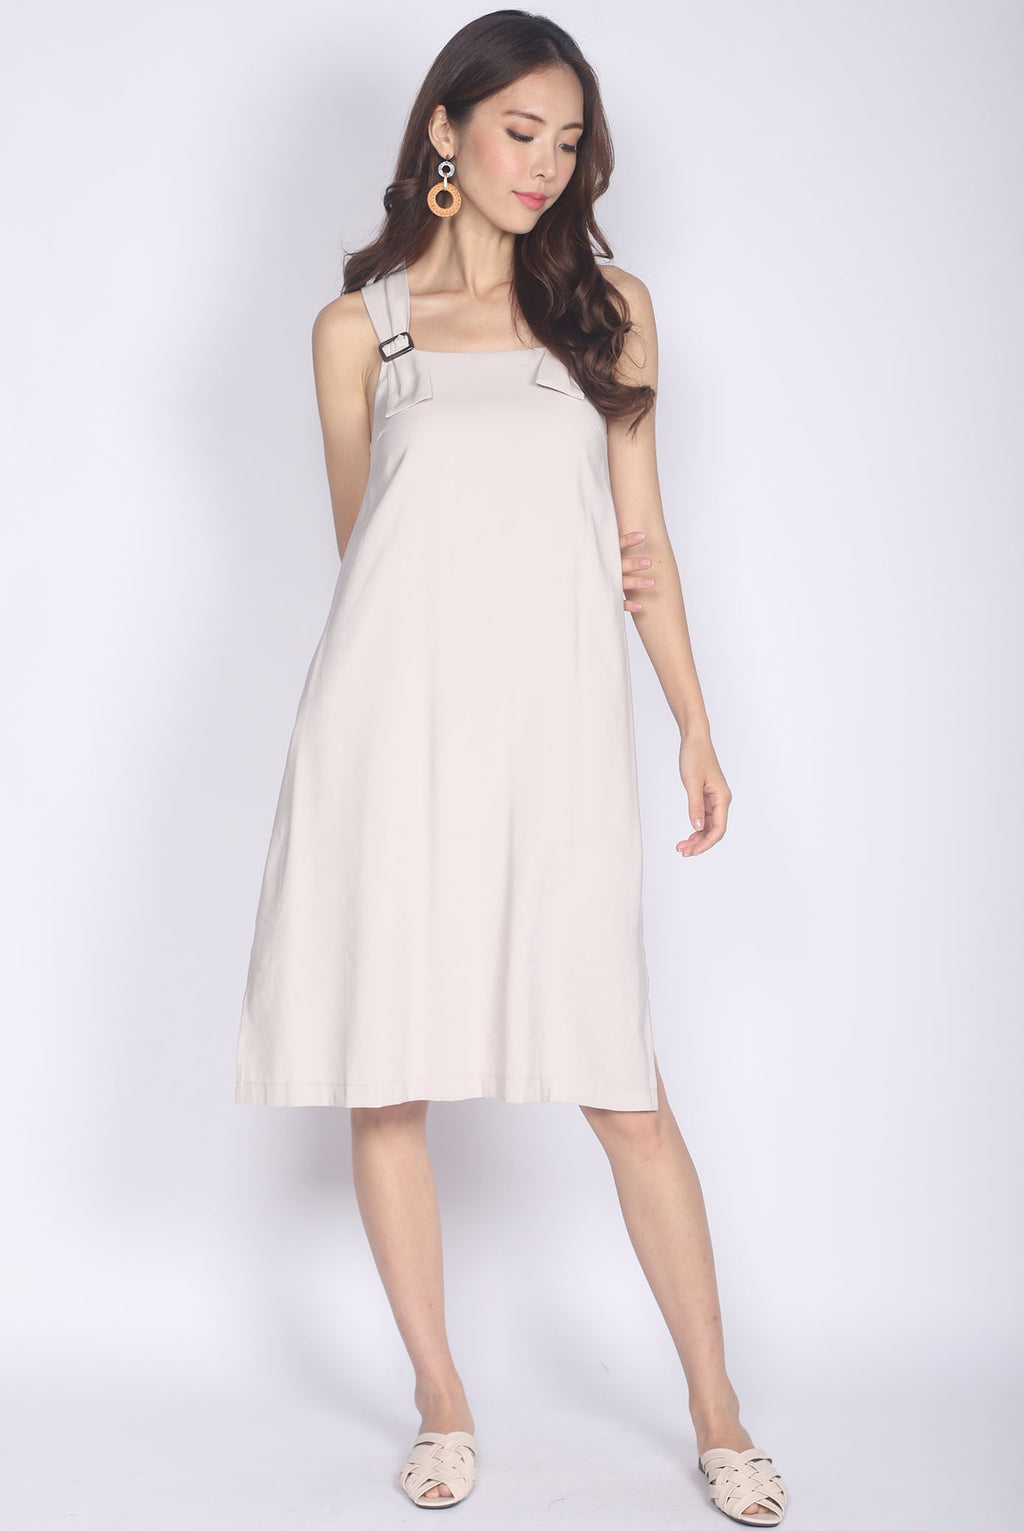 Kalera Buckle Shoulder Dress In Wheat